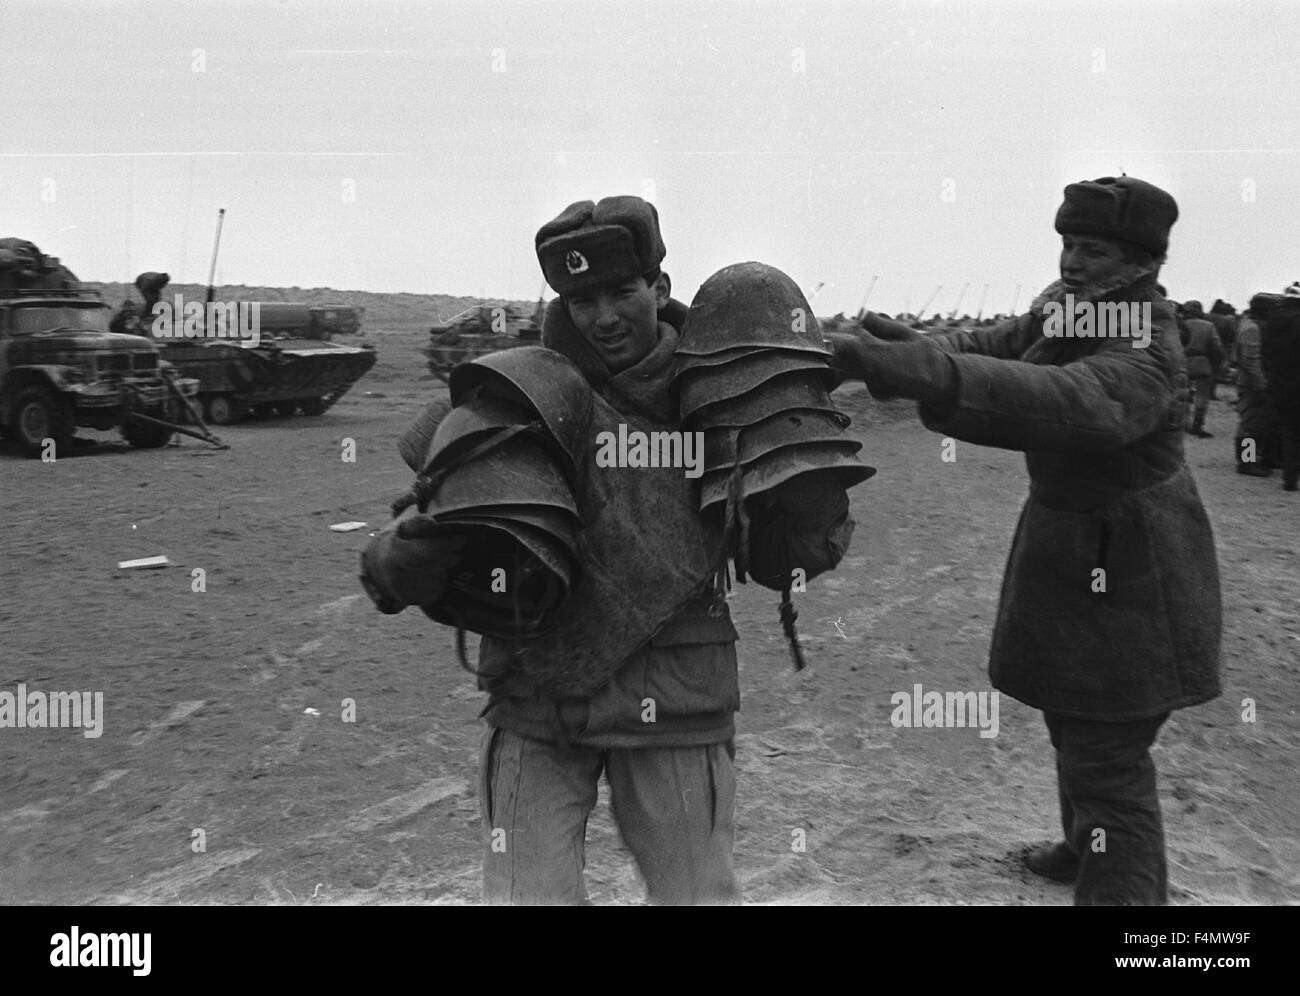 Soviet Afghanistan war - Page 6 Ussr-termez-withdrawal-of-soviet-forces-from-afghanistan-soldiers-F4MW9F